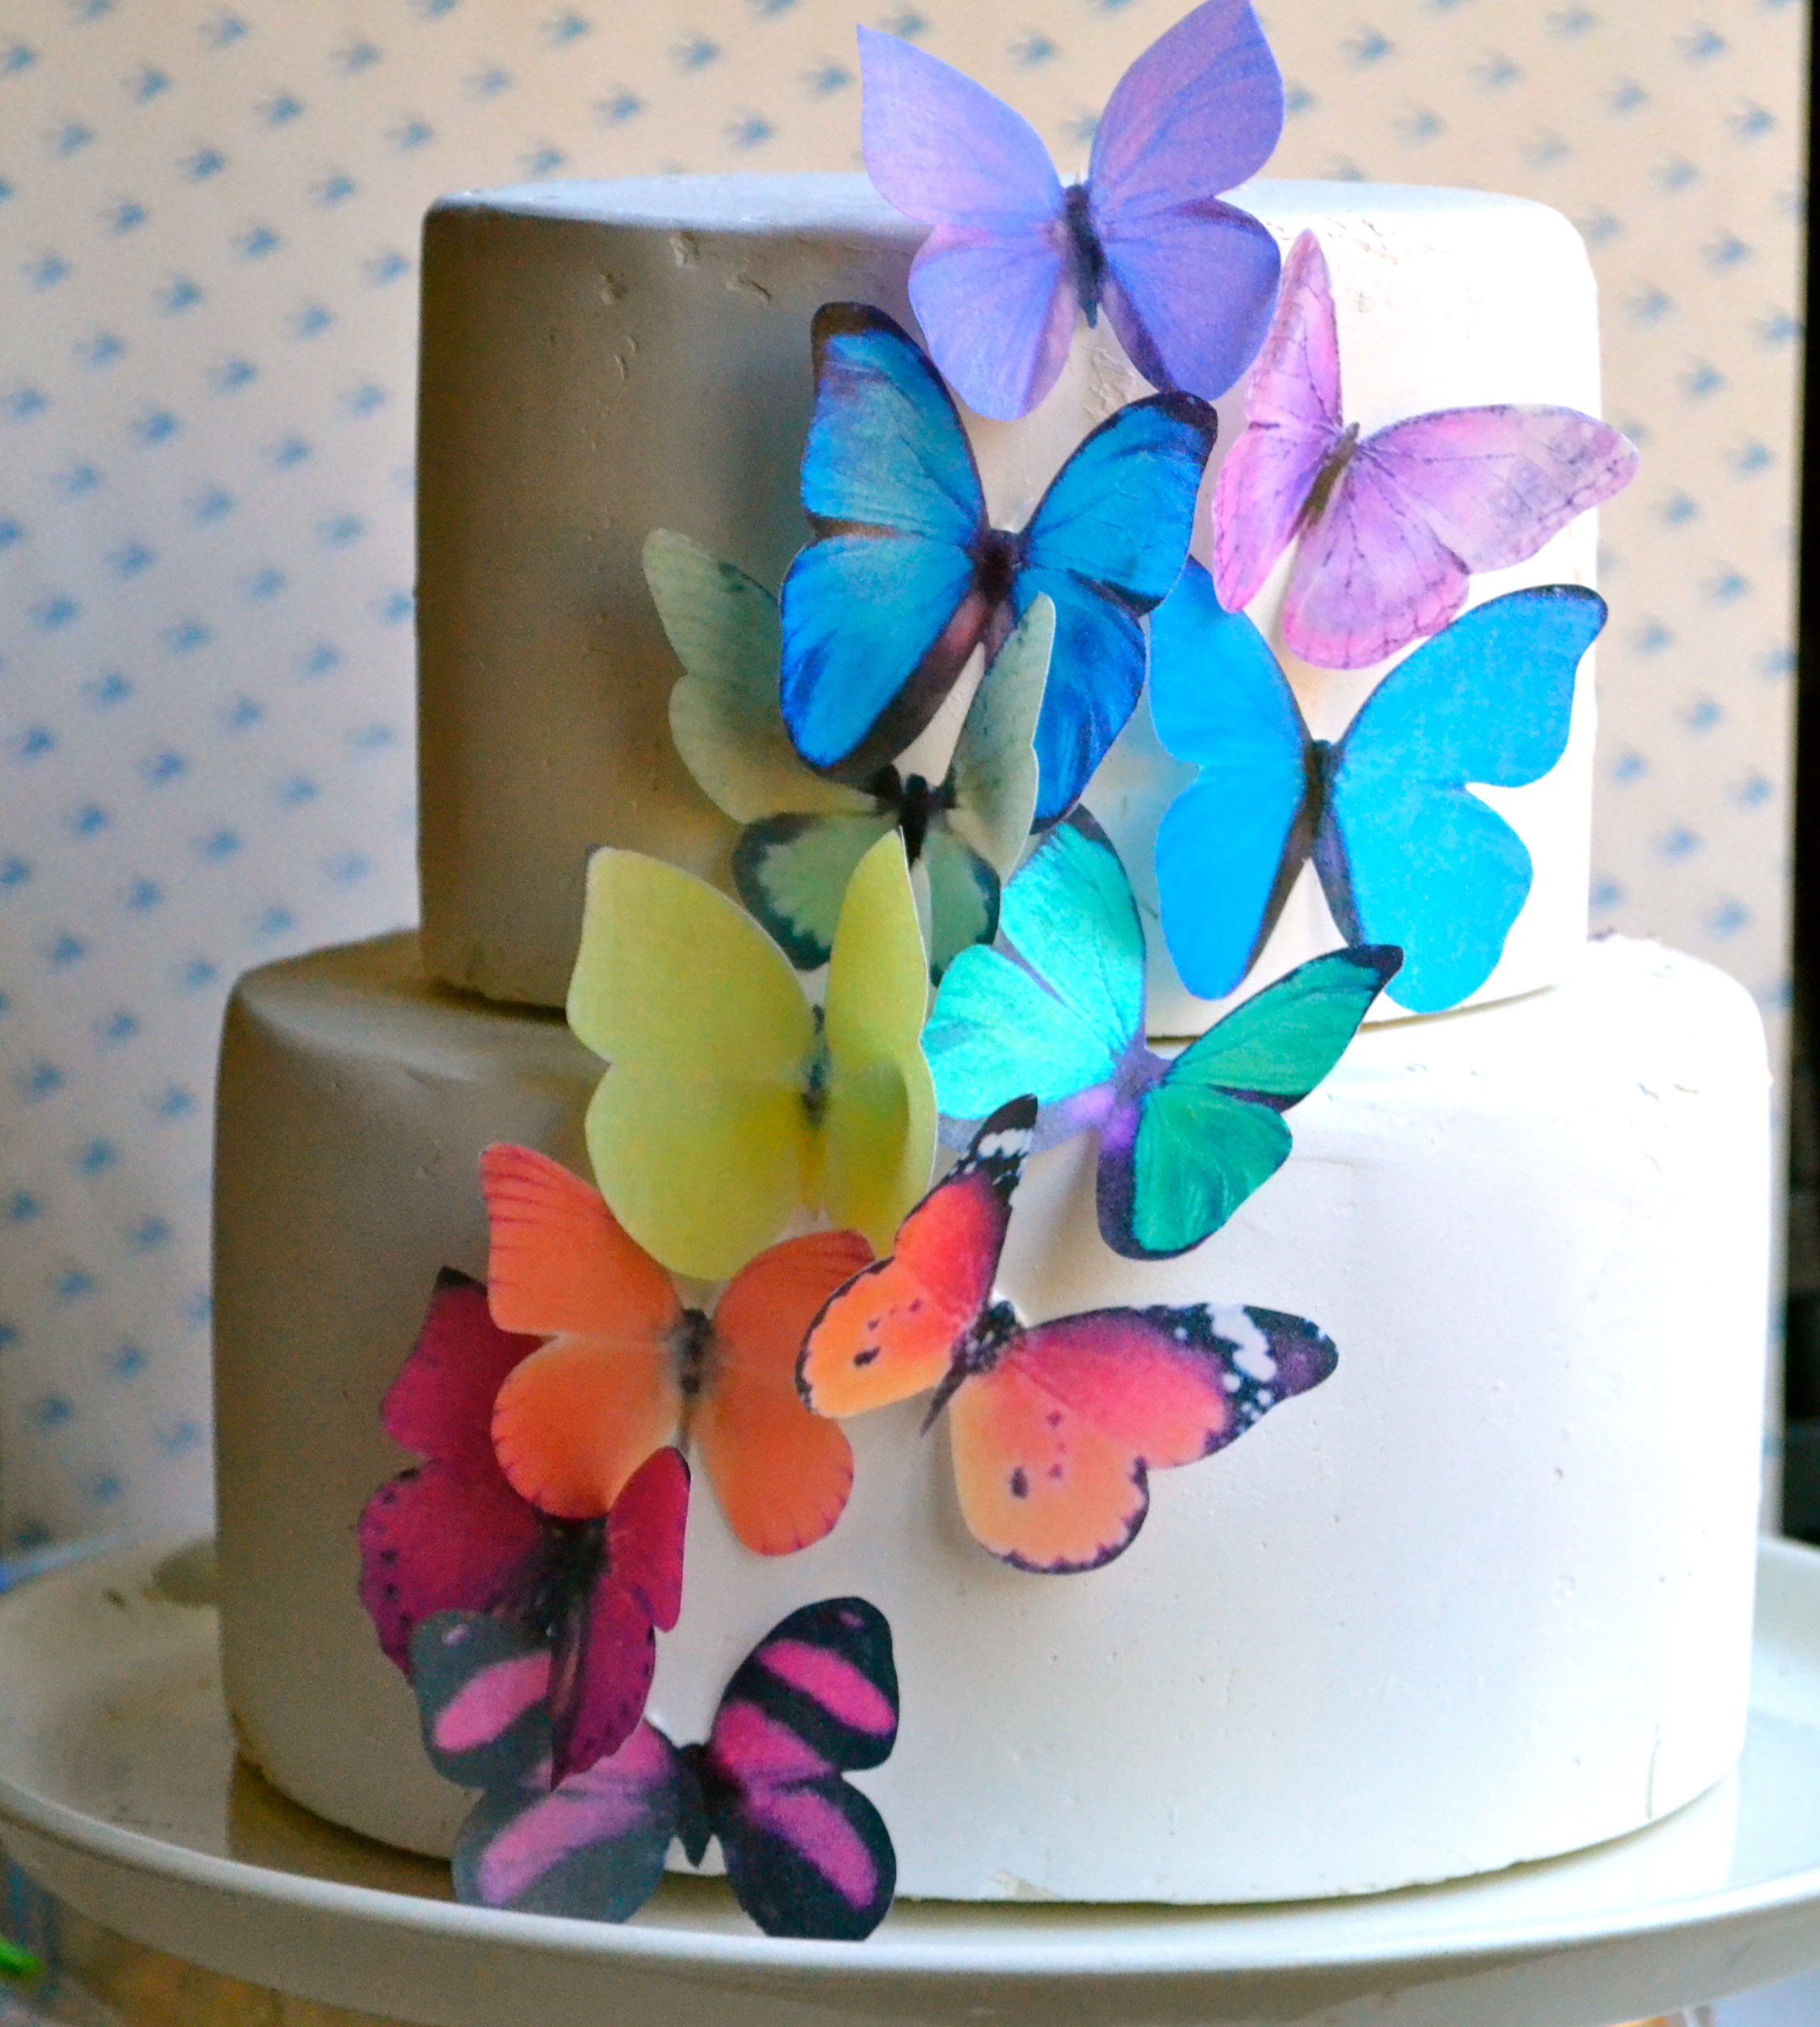 Edible Butterflies © -Large Rainbow Variety Set of 12 - Cake and Cupcake Toppers, Decoration